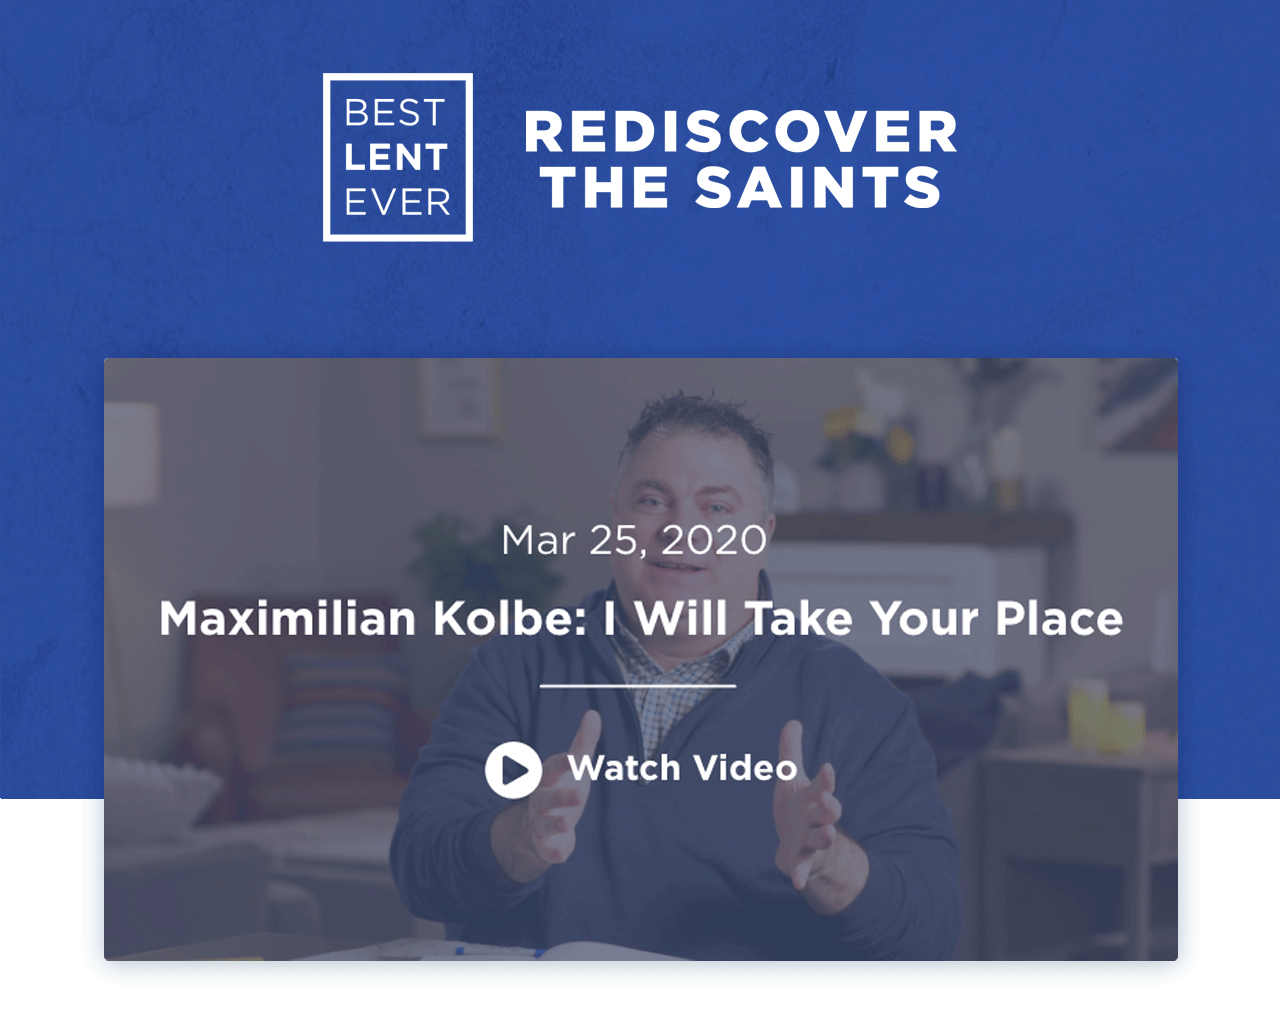 March 25, 2020 Maximilan Kolbe: I Will Take Your Place. Watch Video